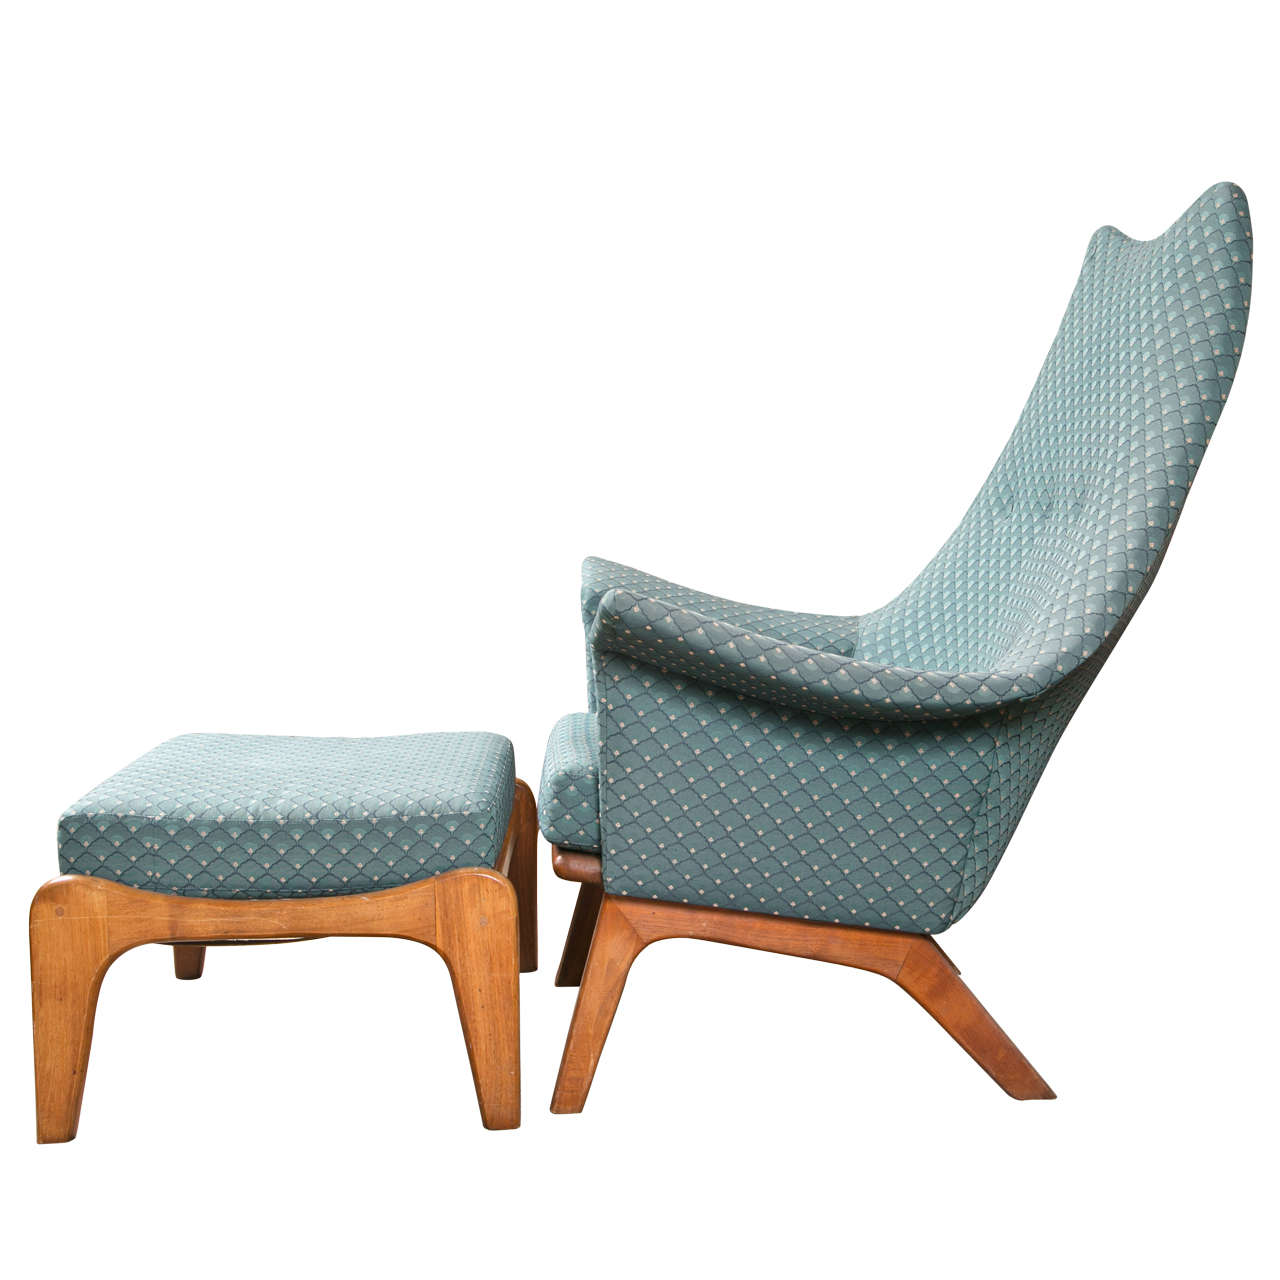 Danish Modern Lounge Chair and Stool Adrian Pearsall at 1stdibs